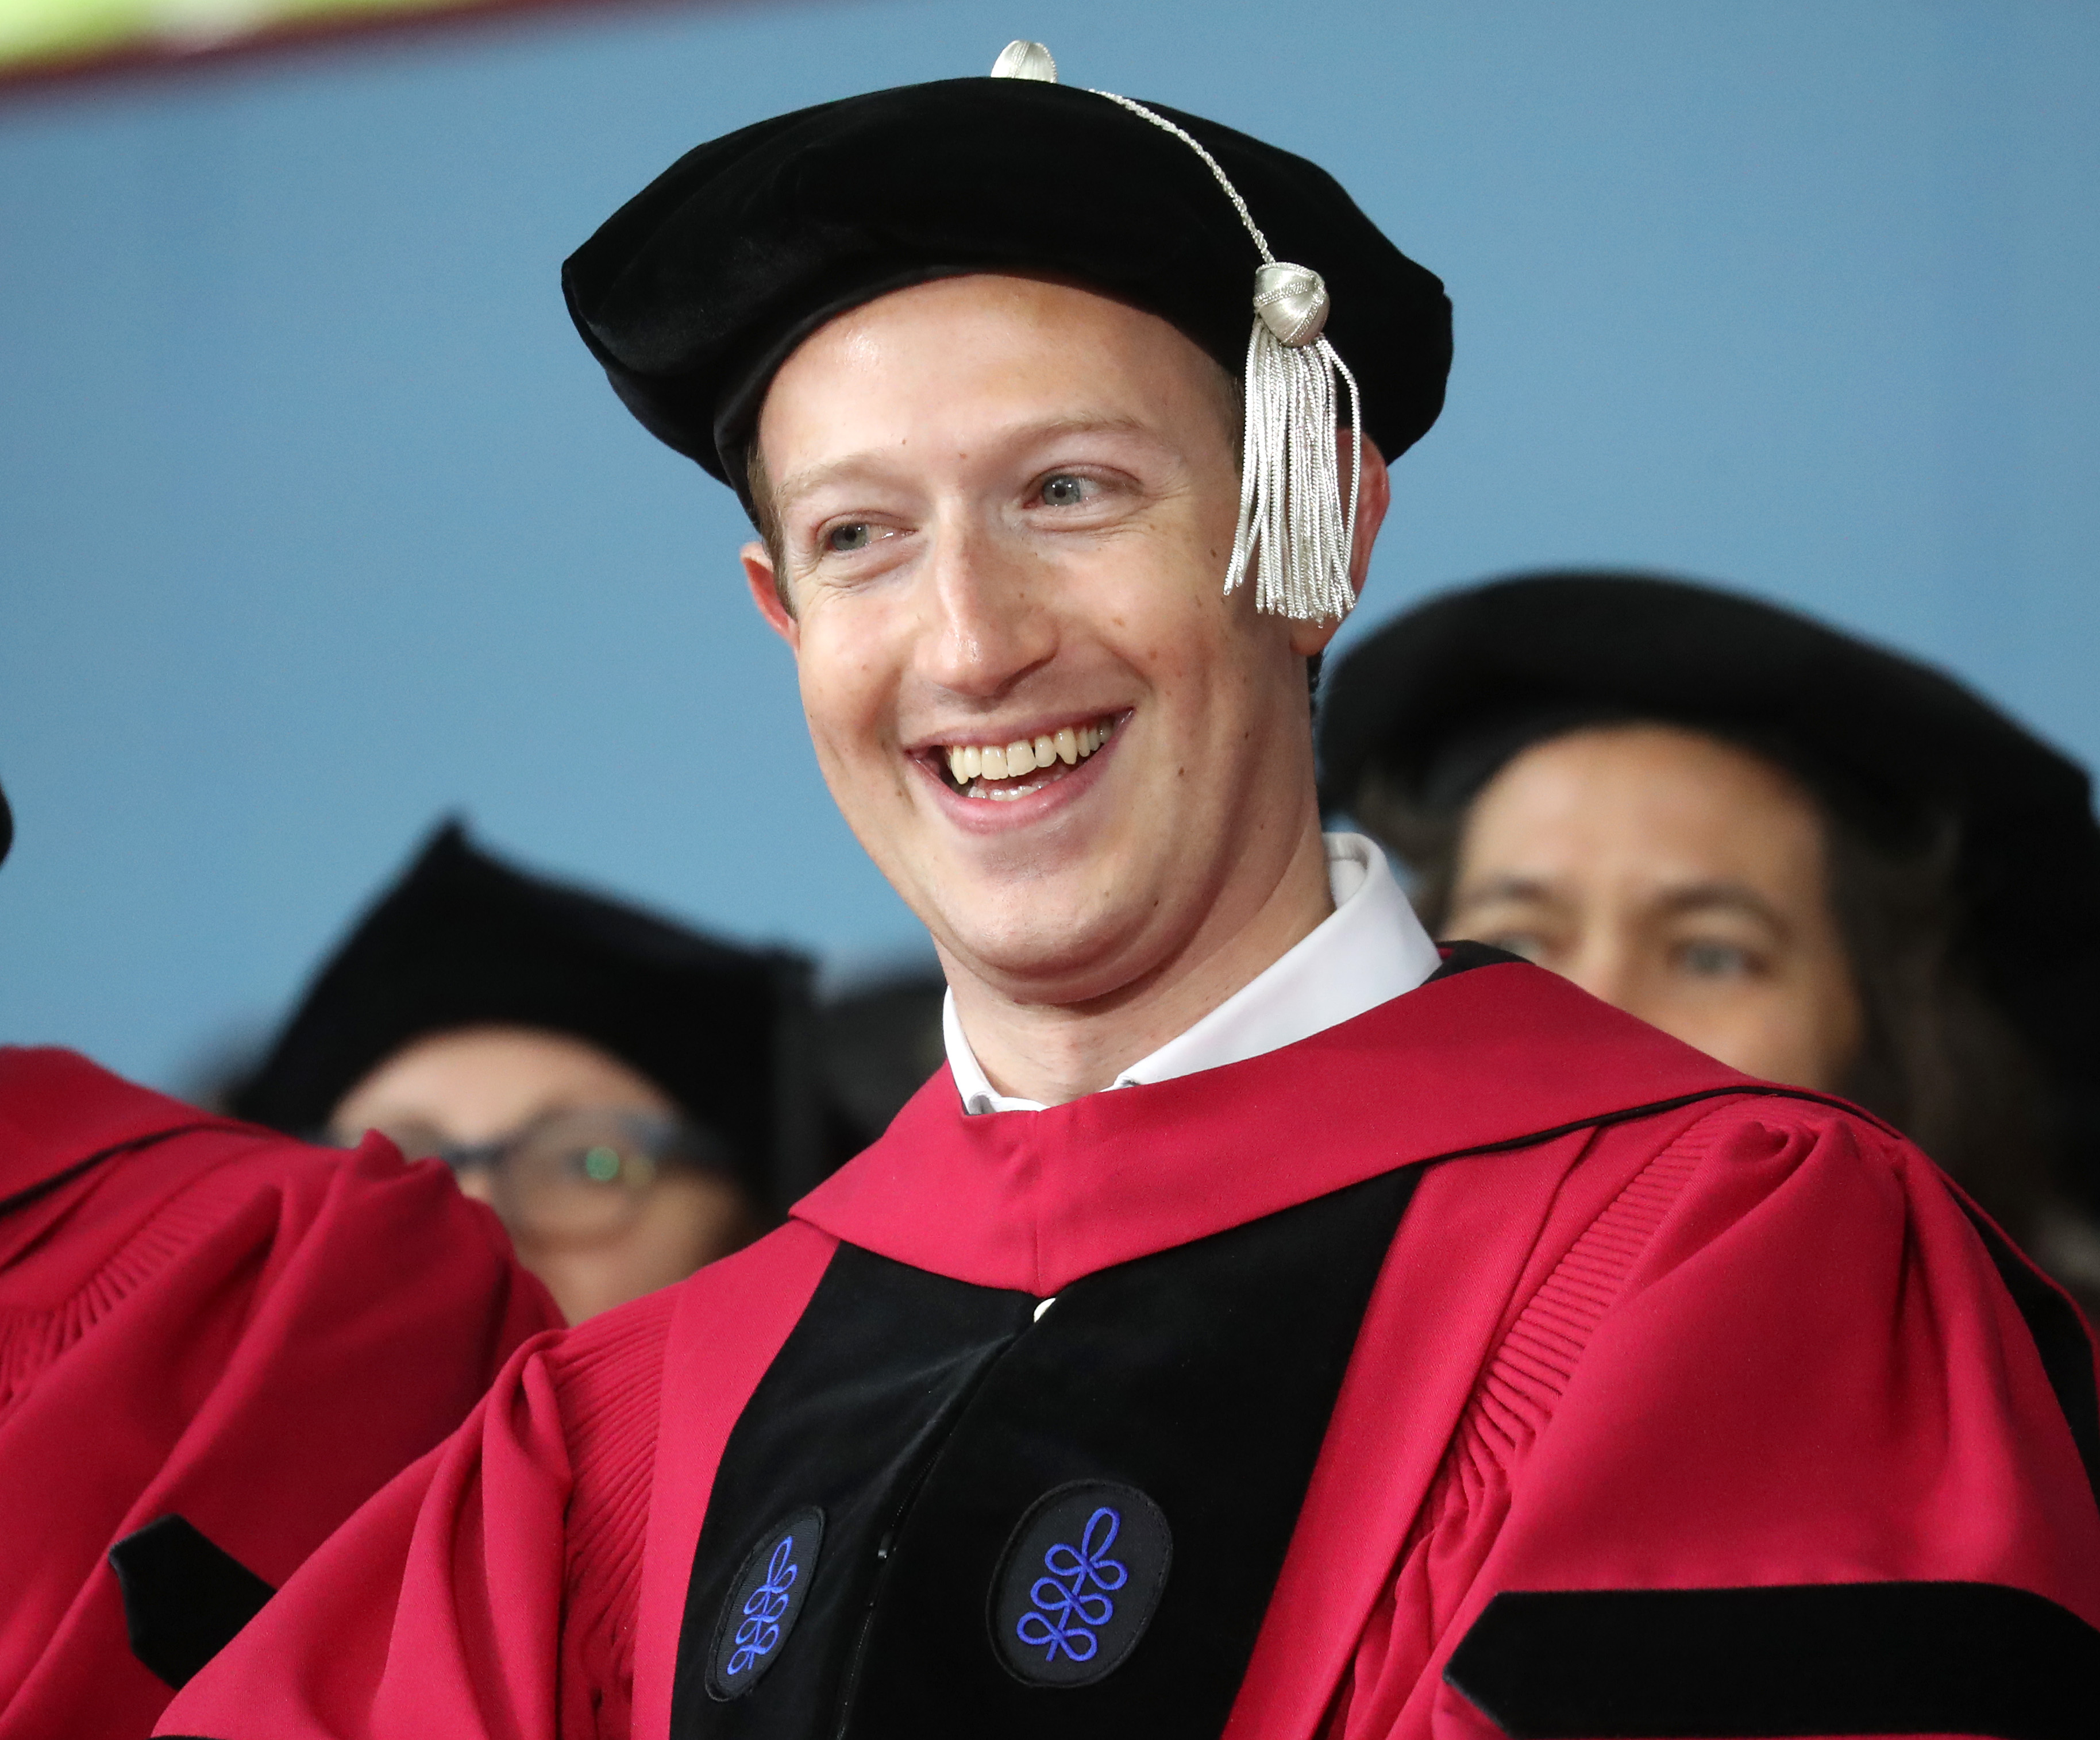 Mark Zuckerberg, Harvard dropout and CEO of Facebook, a company worth nearly $400 billion, is pictured at the Harvard University commencement in Cambridge, MA on May 25, 2017.